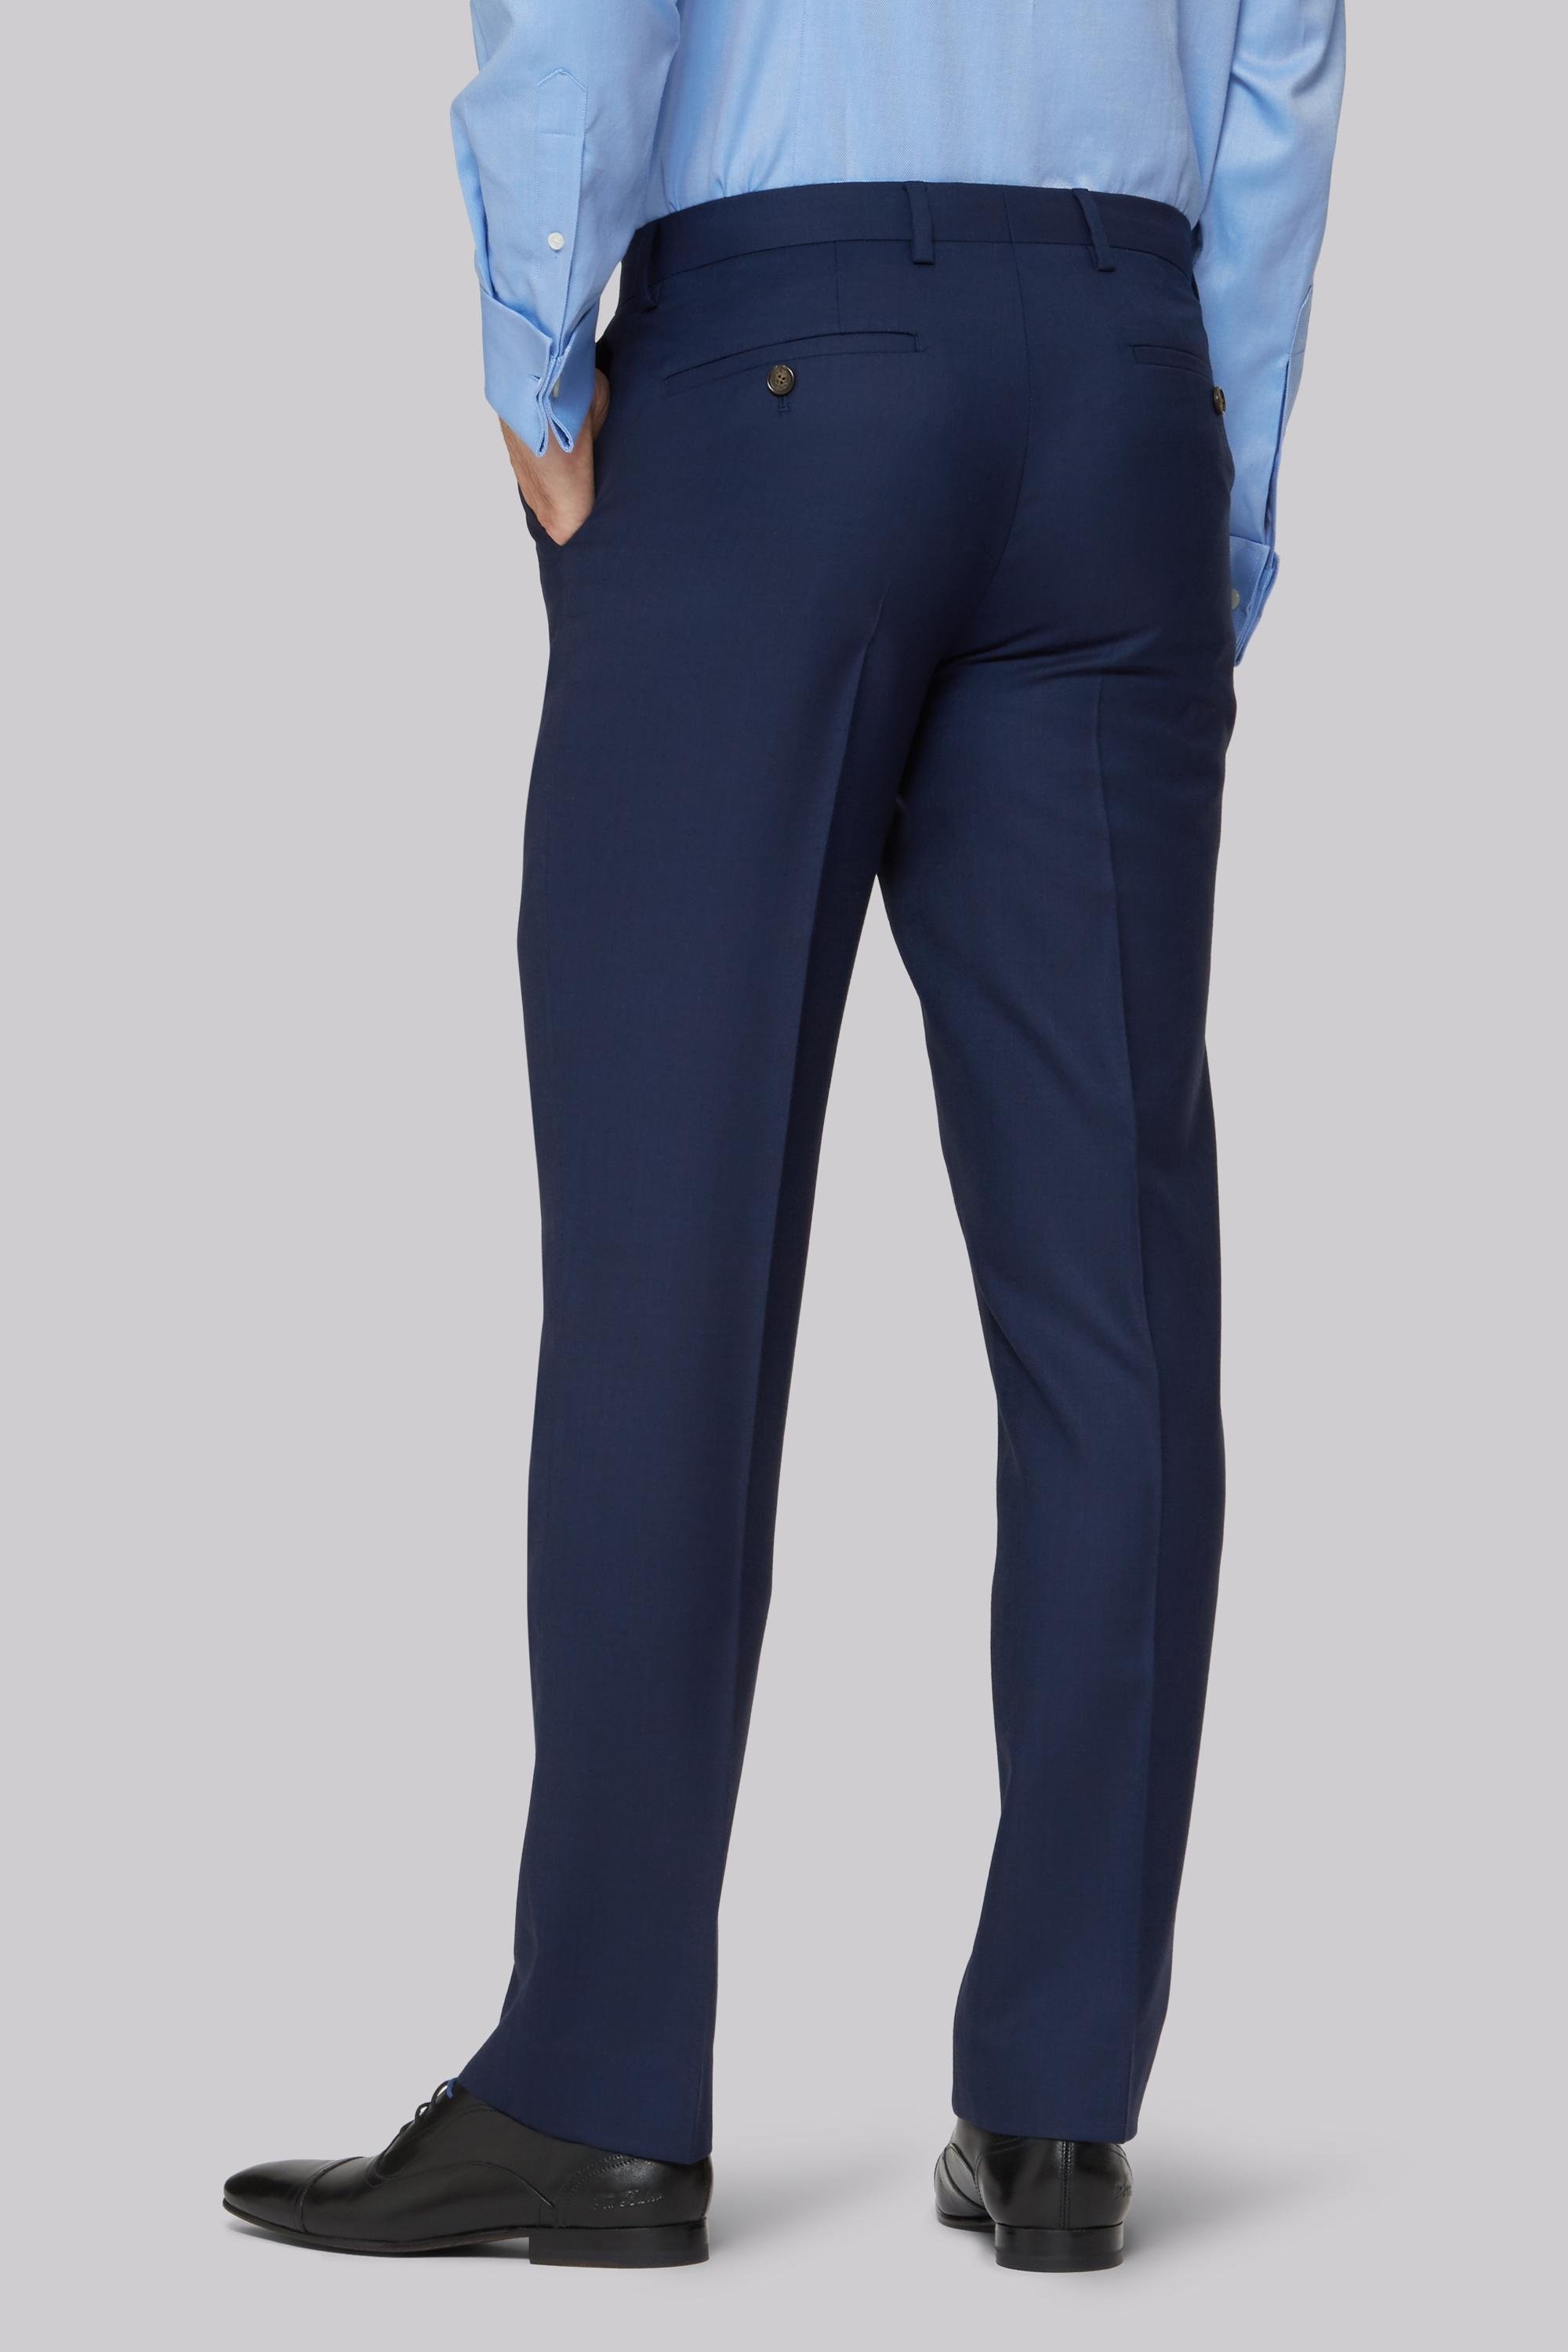 Ted Baker Wool Gold Tailored Fit Navy Two Tone Trousers in Blue (Metallic) for Men